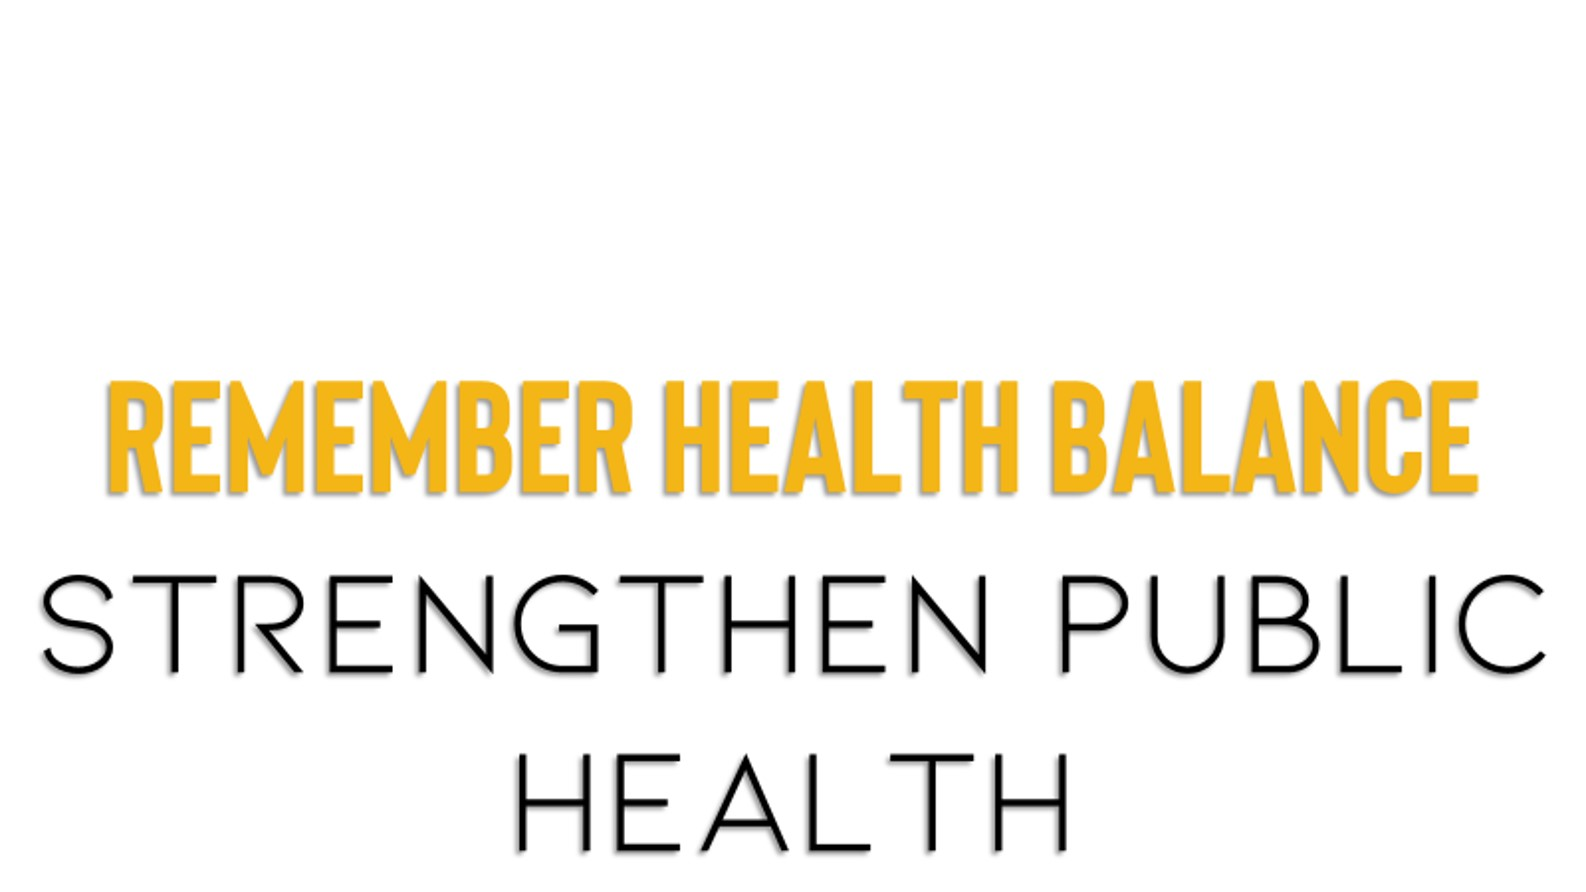 Remember health balance and strengthen public health